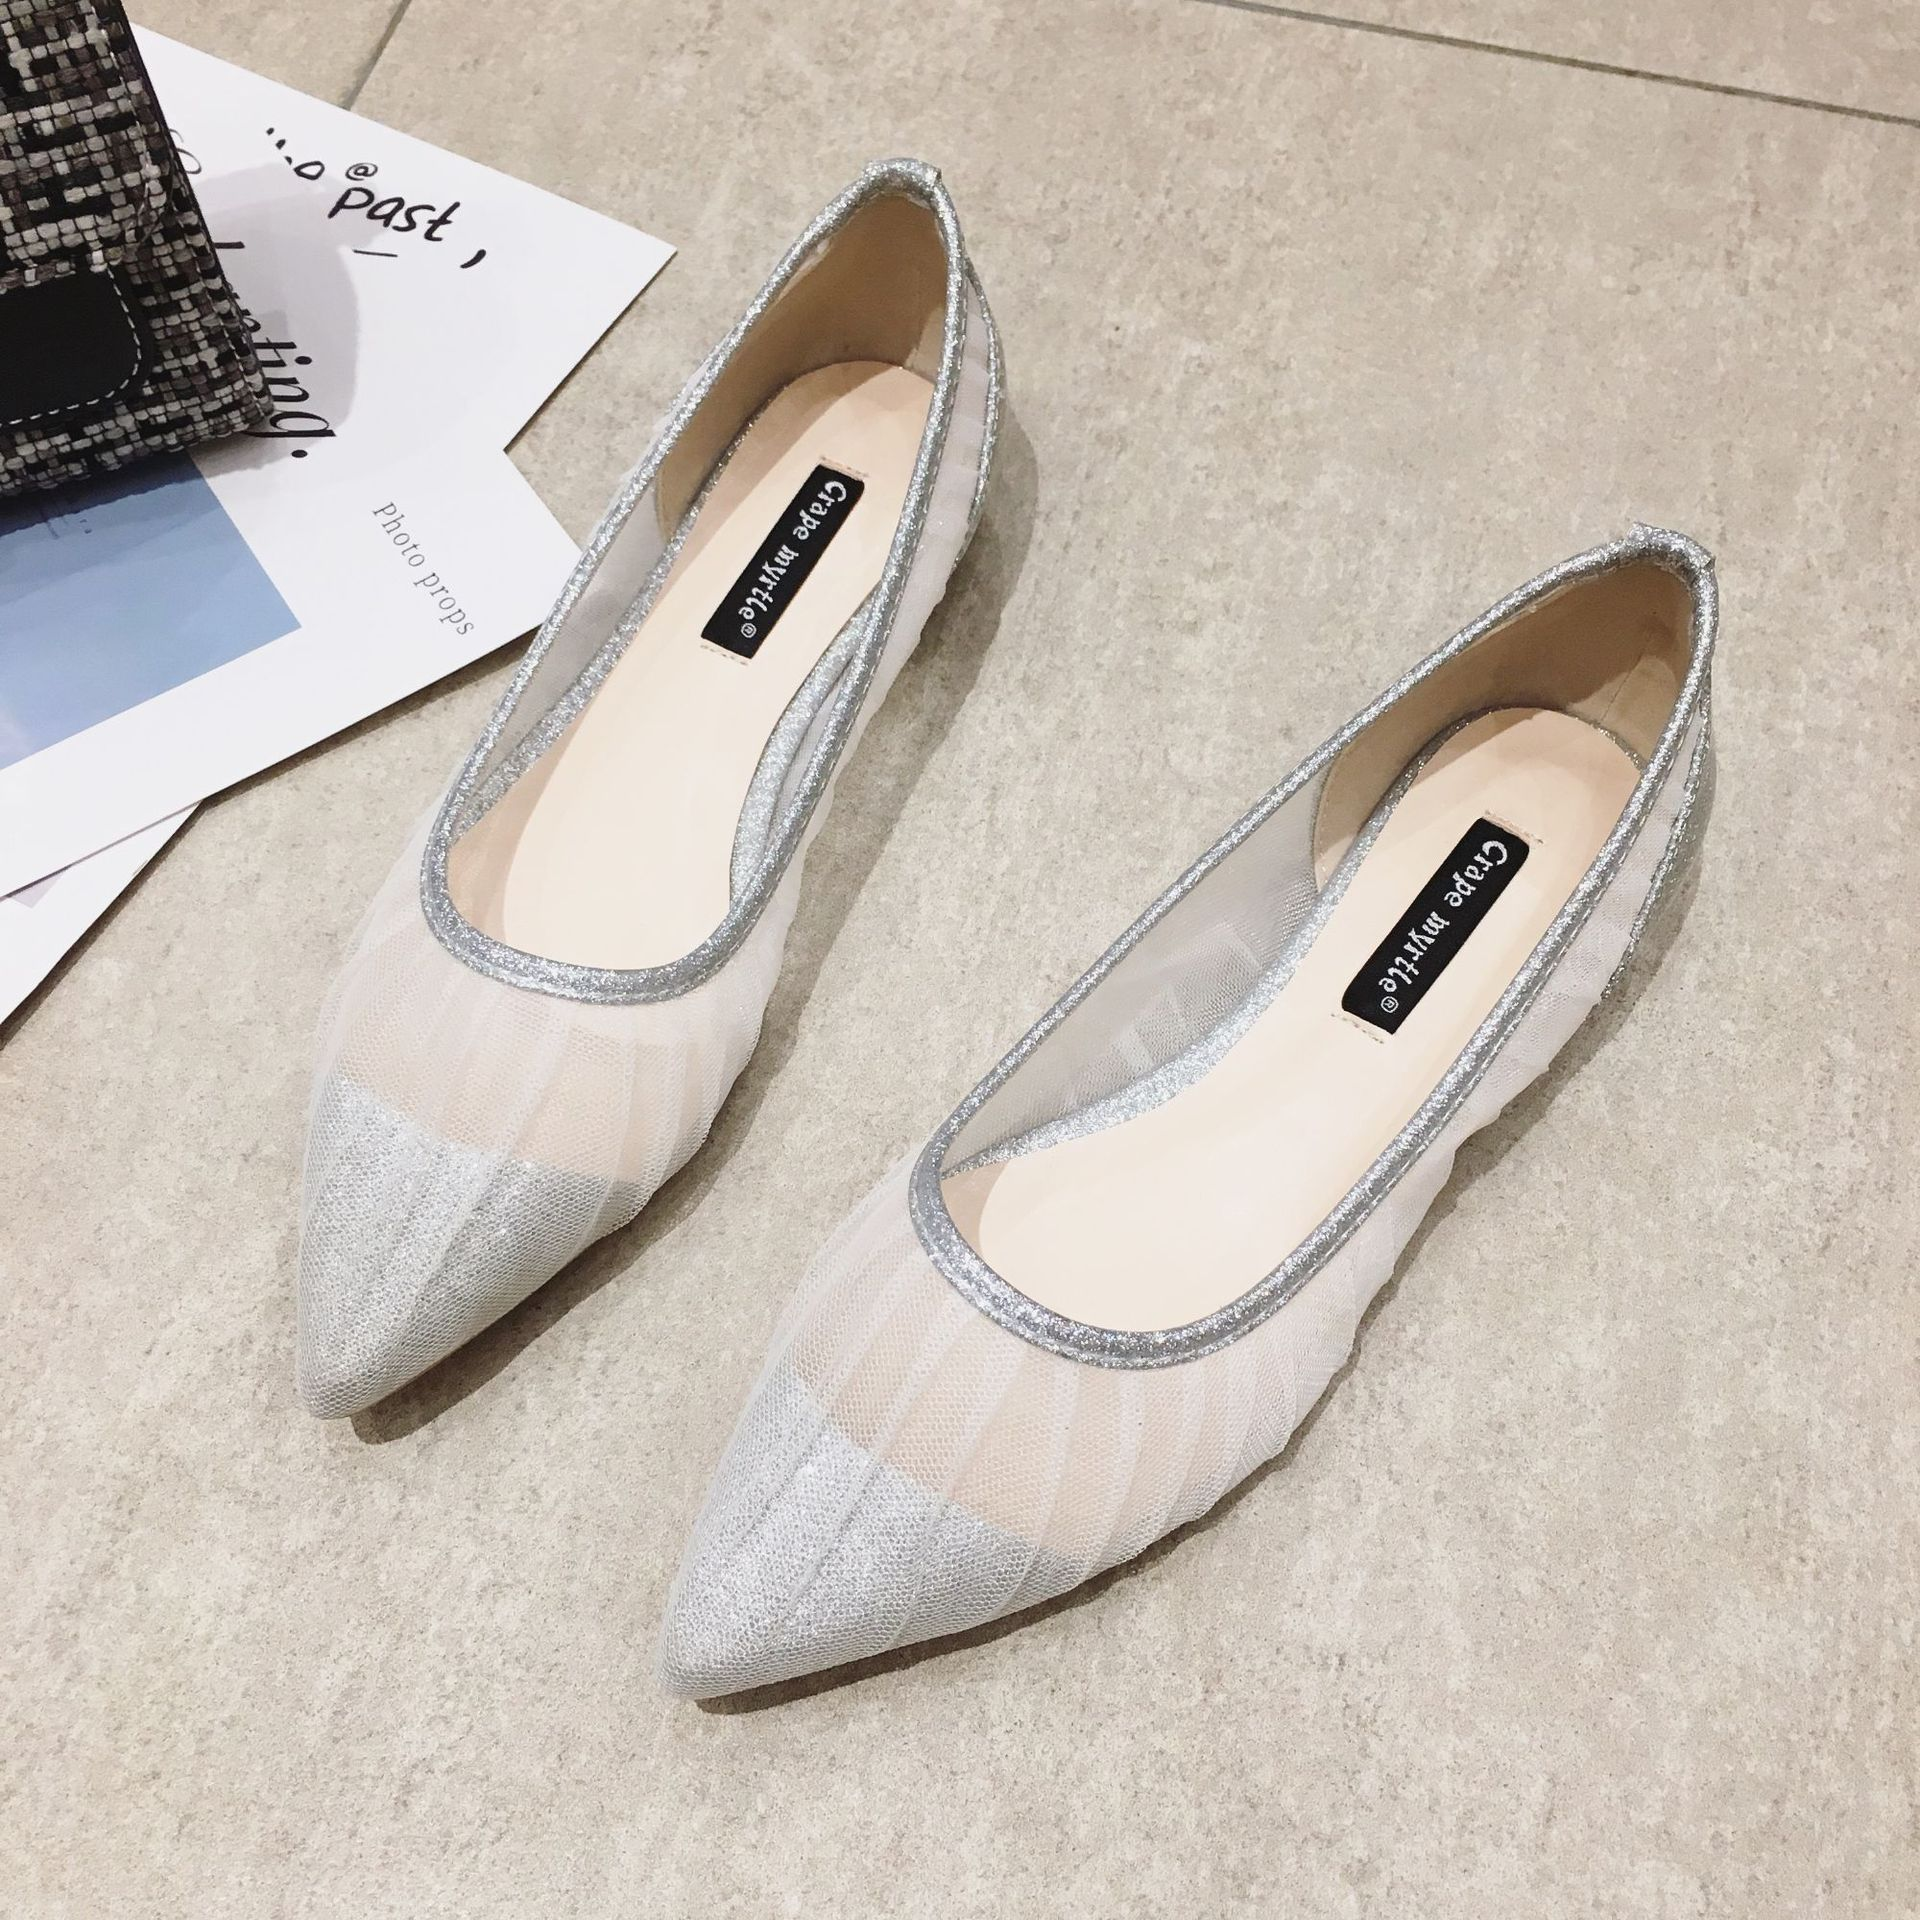 Women's Shoes 2020 New Spring Korean Version of the Flats Joker Tip Mesh Sexy Shoes